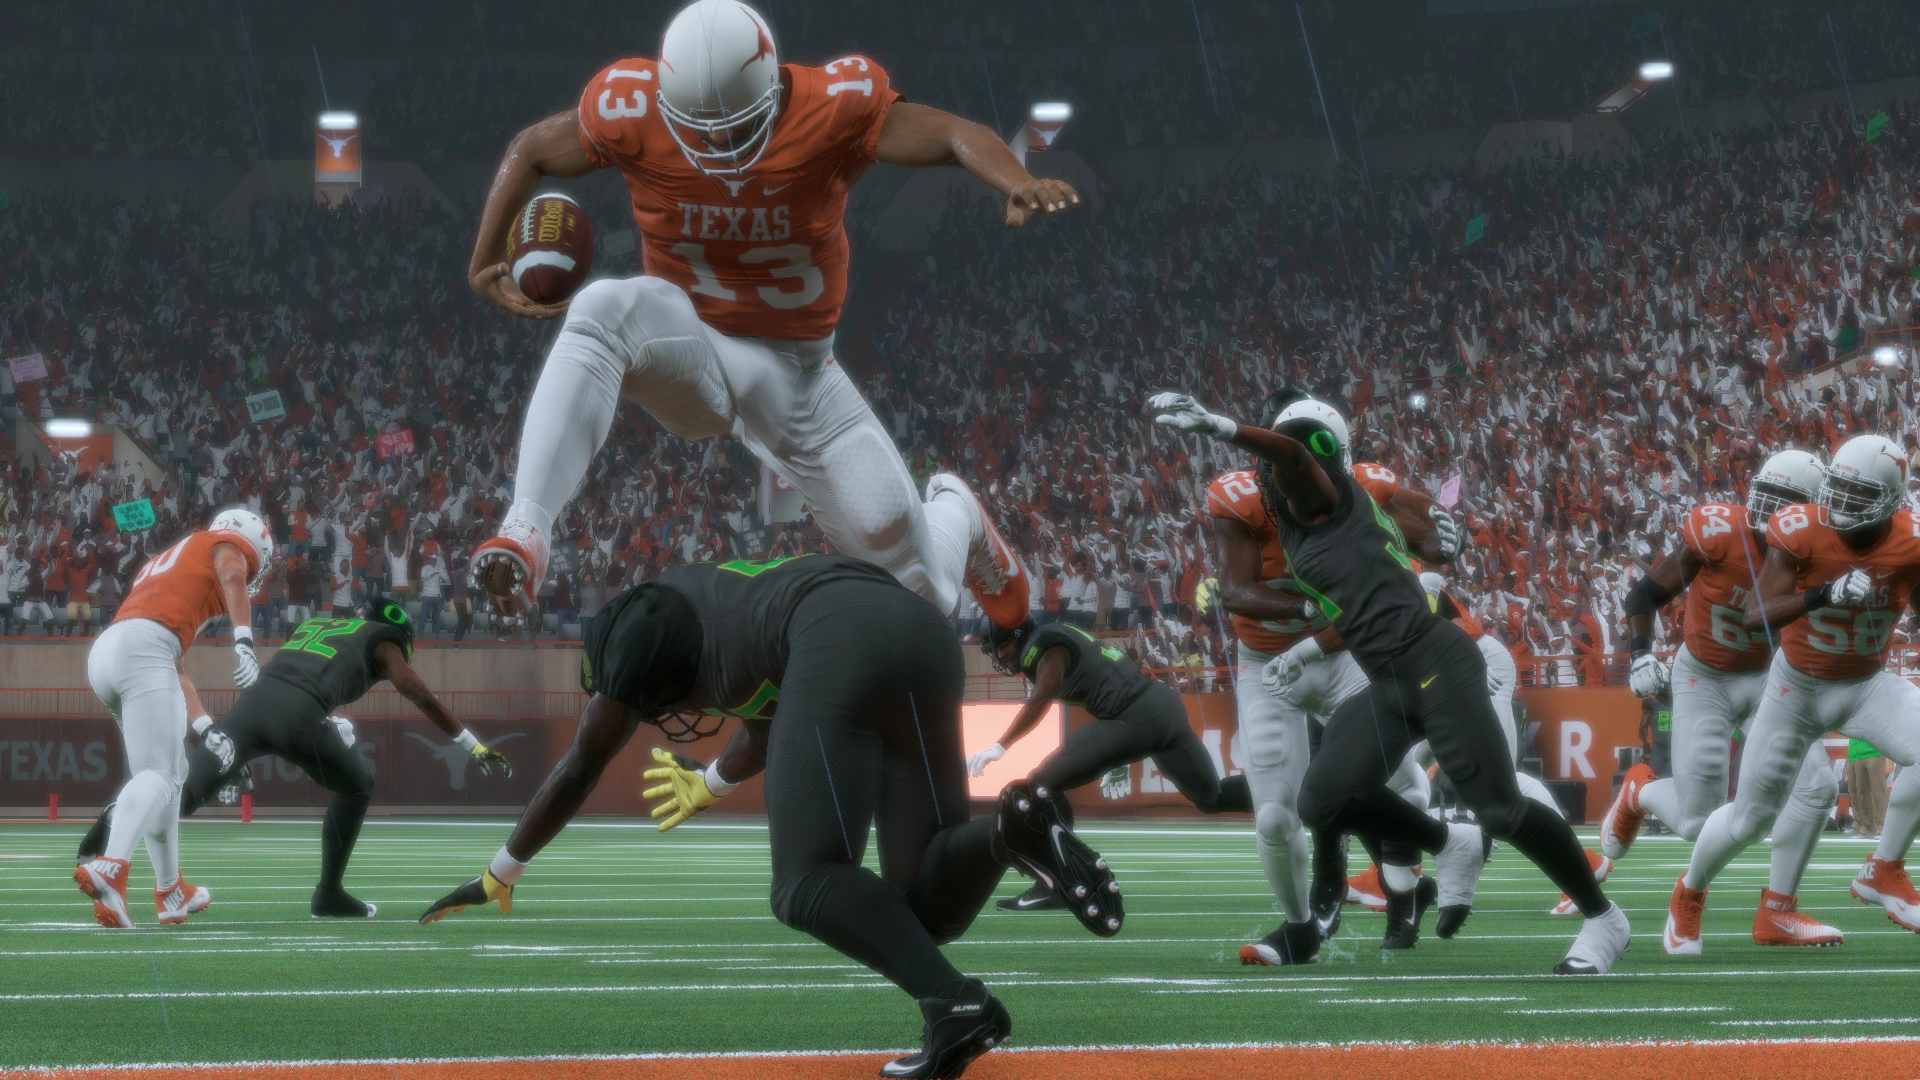 Madden NFL 18 Texas Longhorns Oregon Ducks